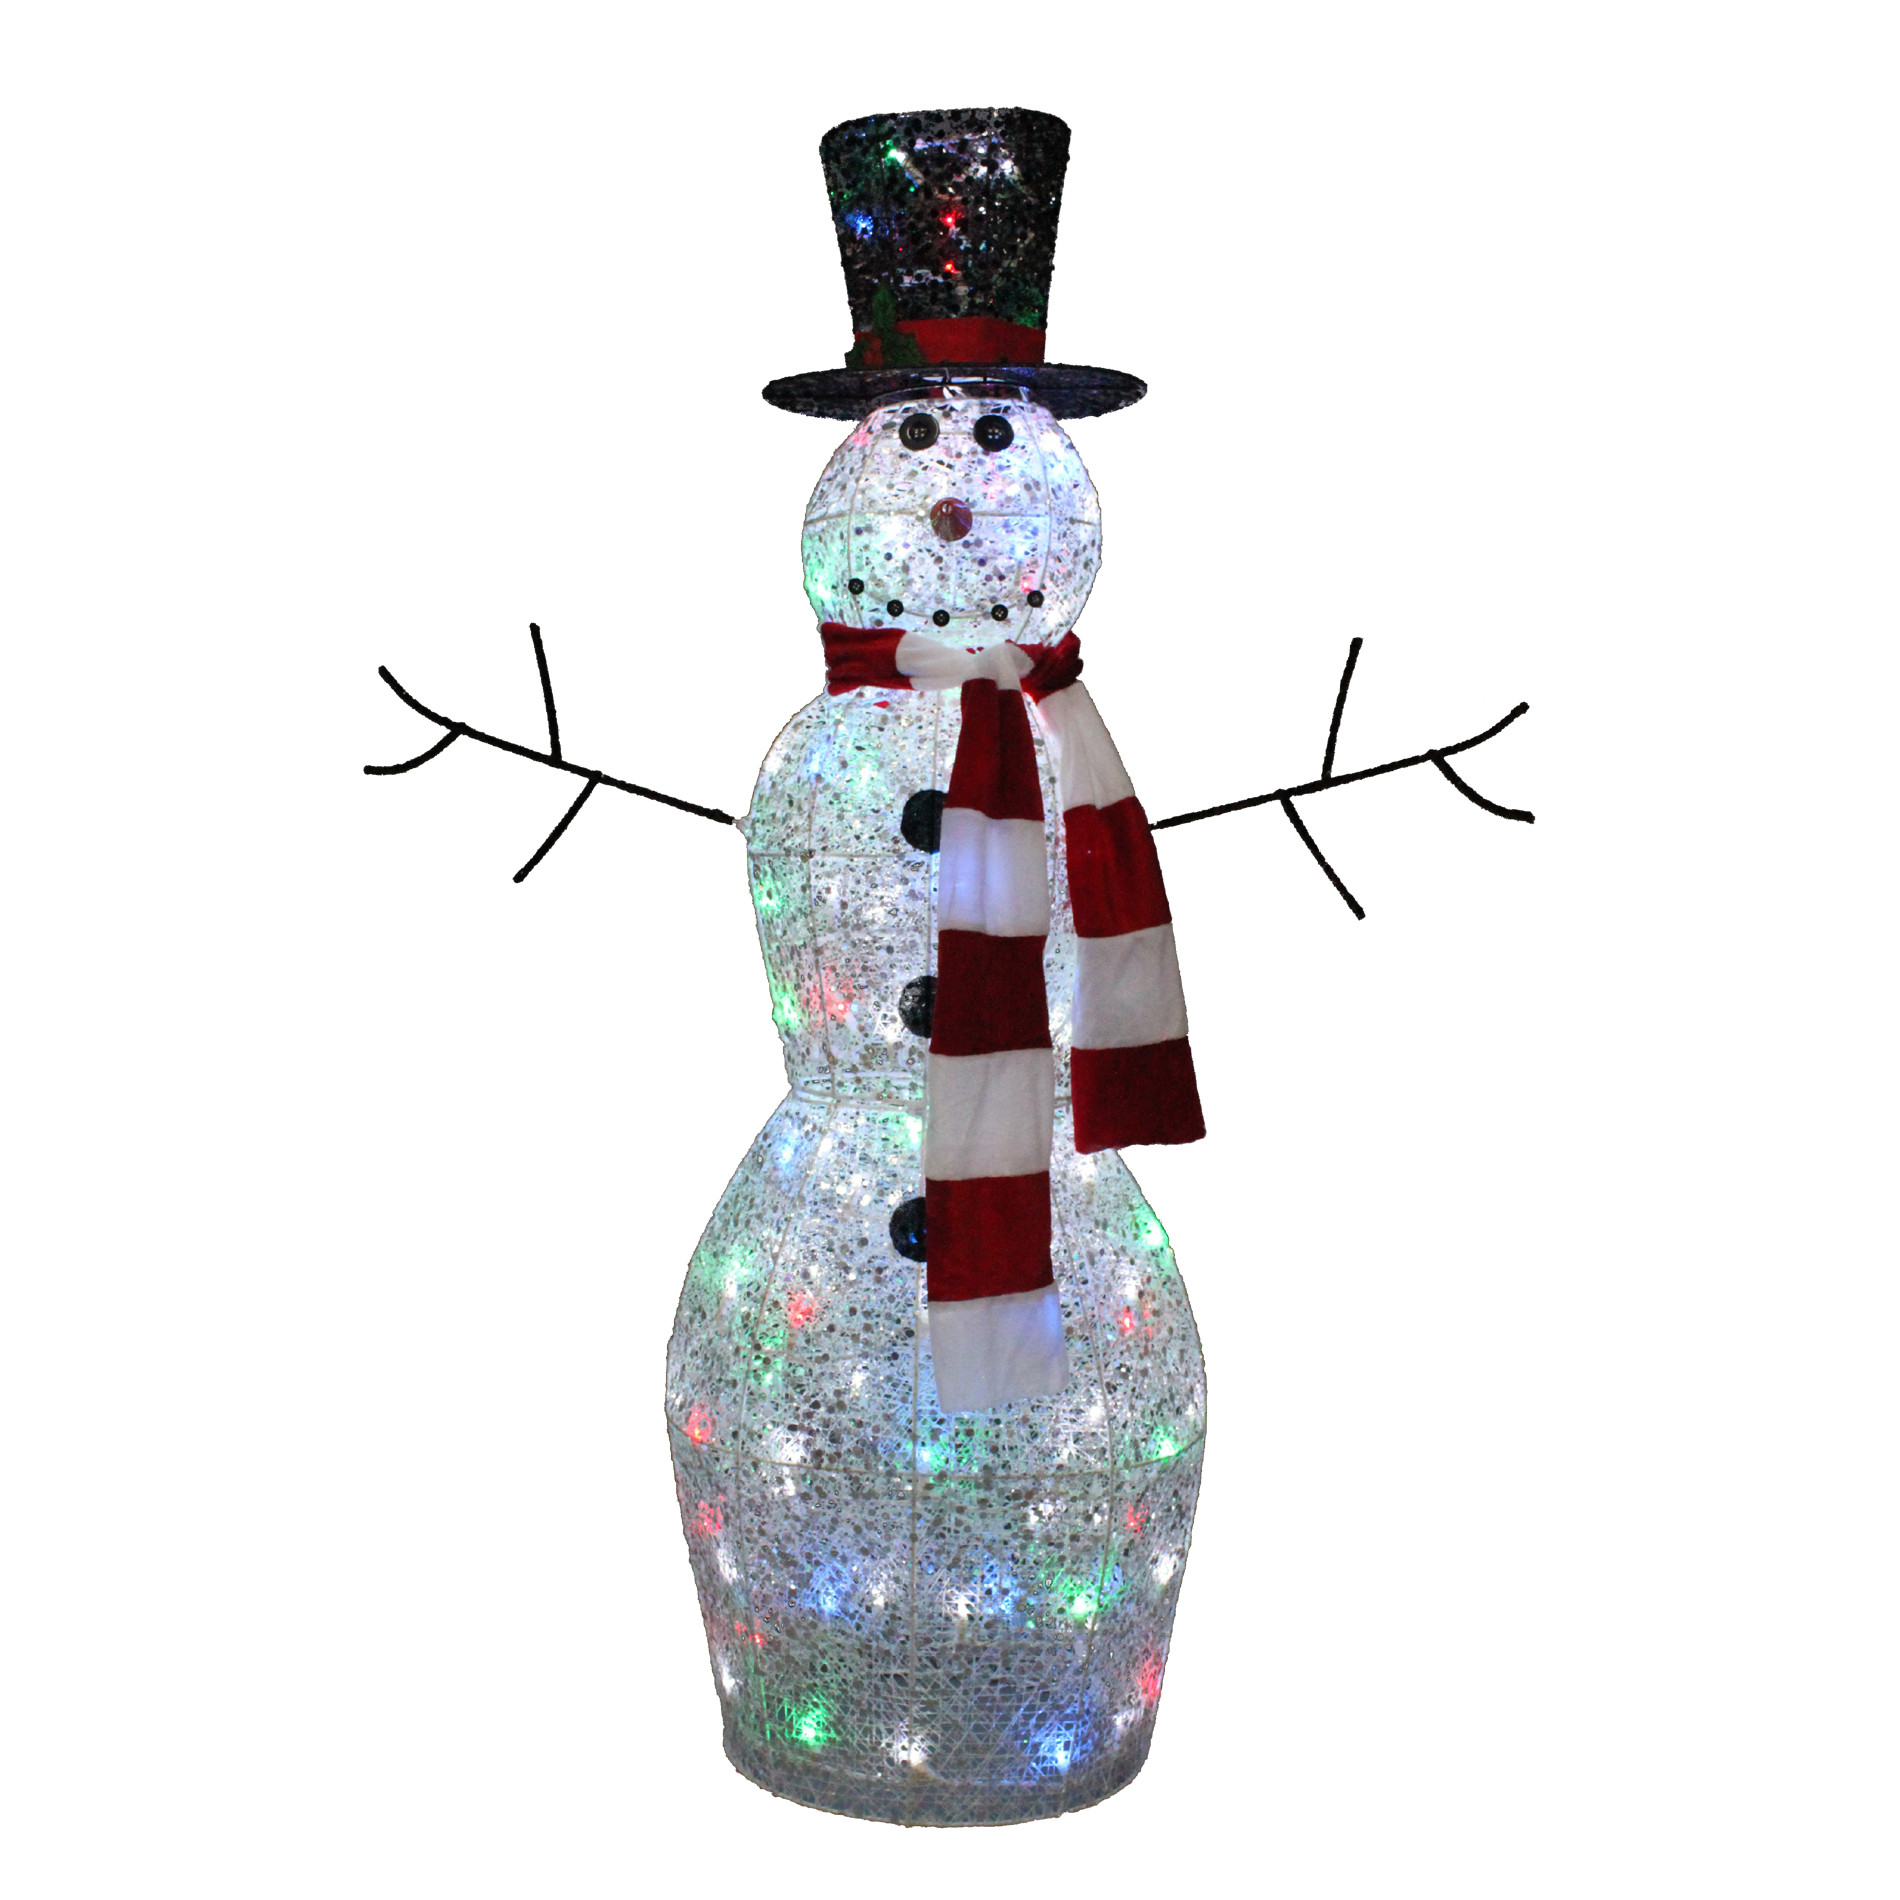 Plastic Outdoor Christmas Decorations Clearance  Trimming Traditions 48in Twinkling Snowman with 100 LED